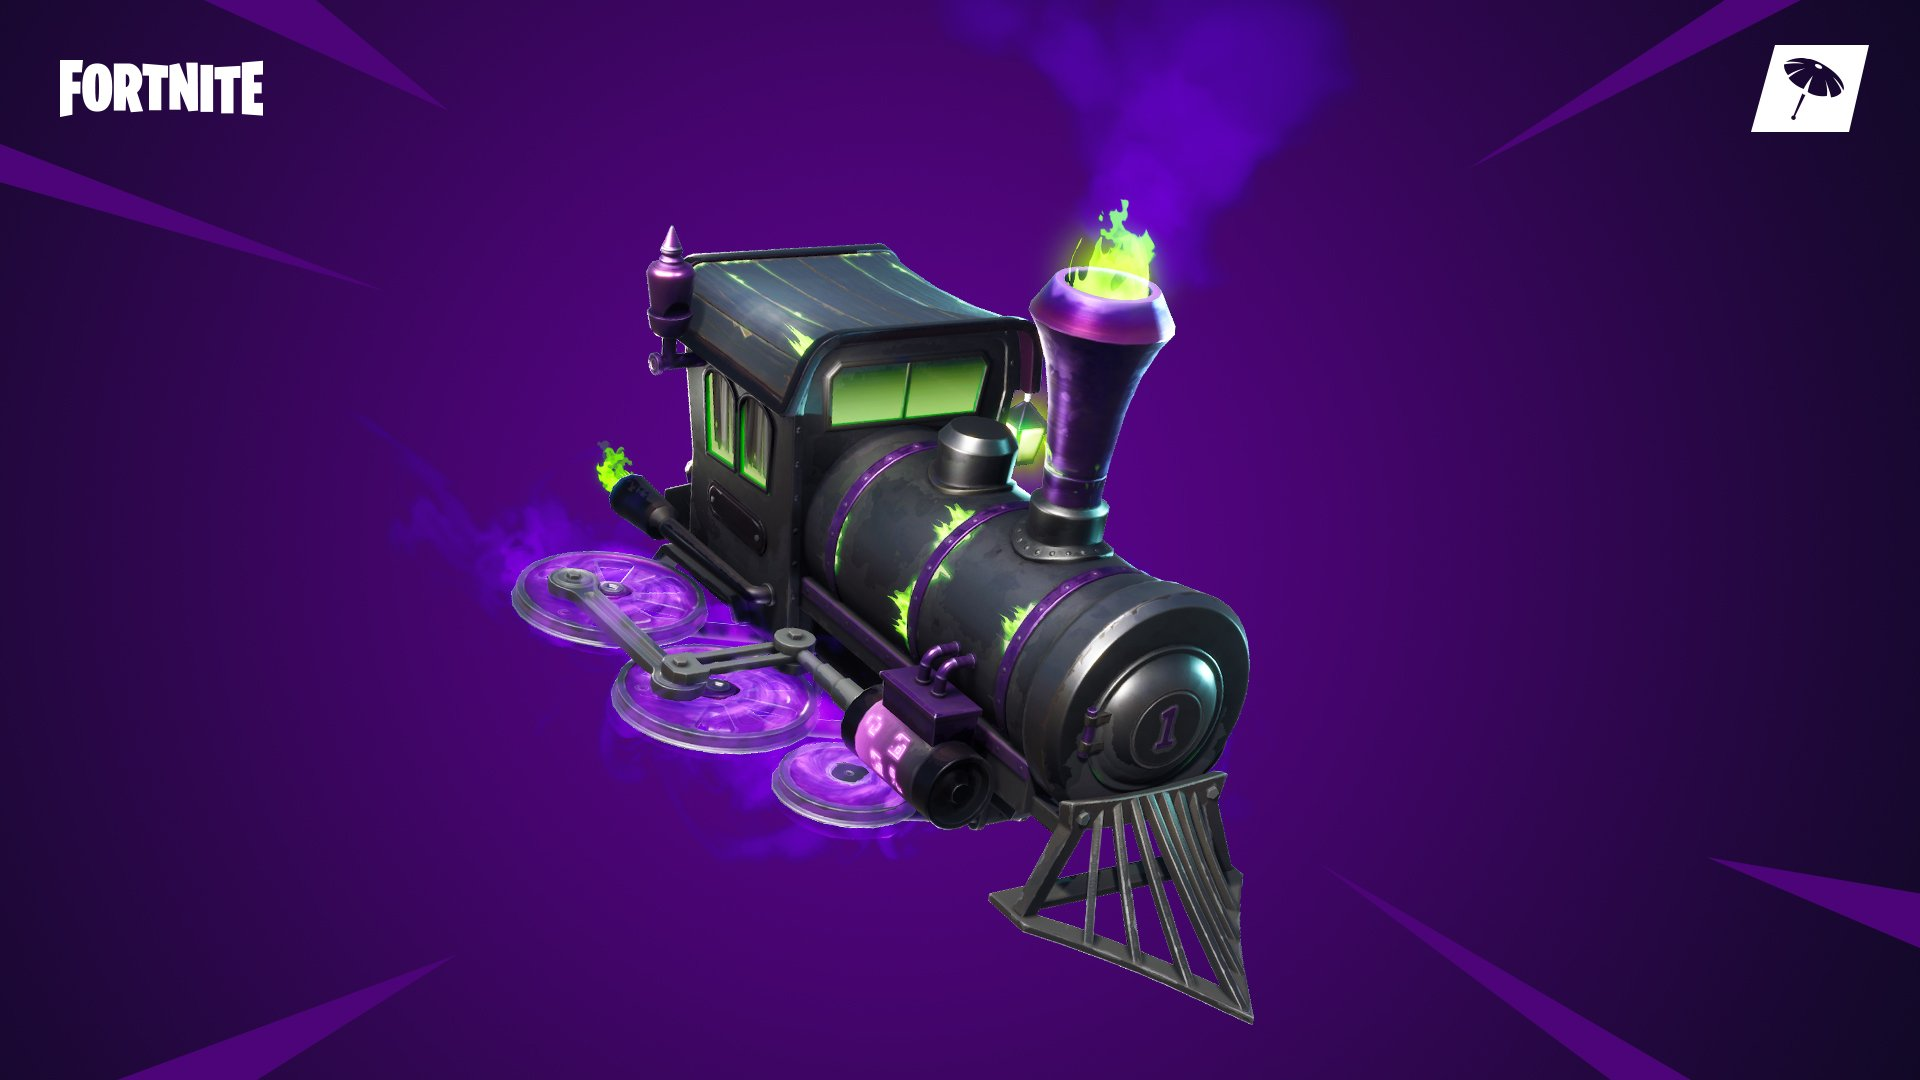 Fortnite Dark Engine Wallpaper. If You Like To Download This Wallpaper,  Please Use This ...